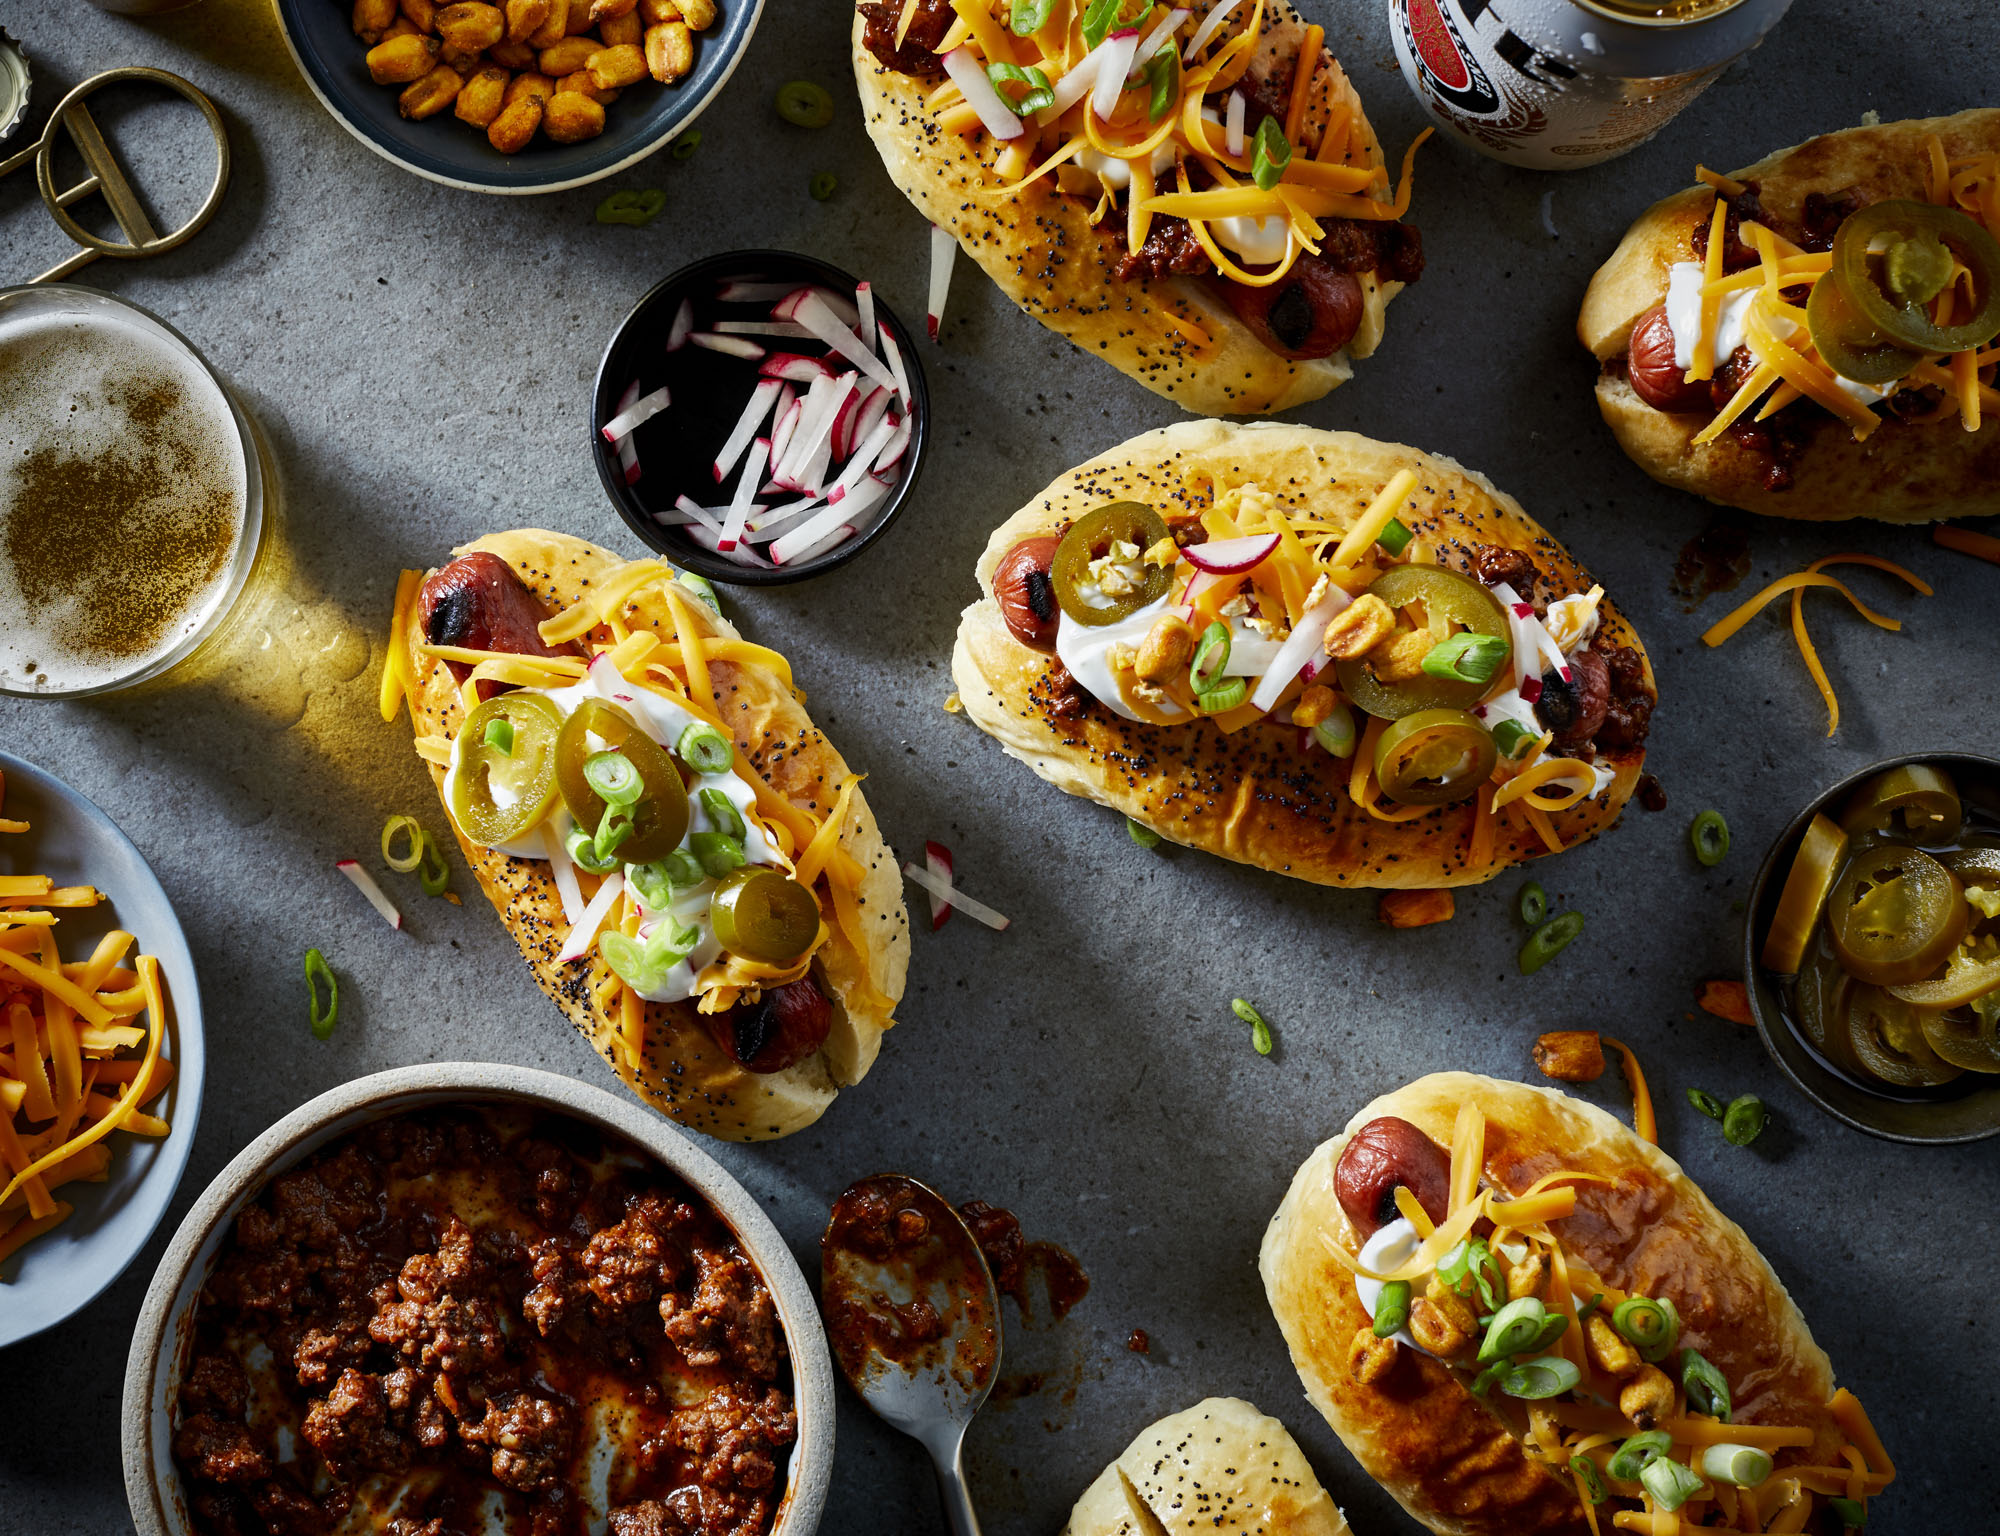 Ultimate Loaded Chili-Topped Hot Dogs